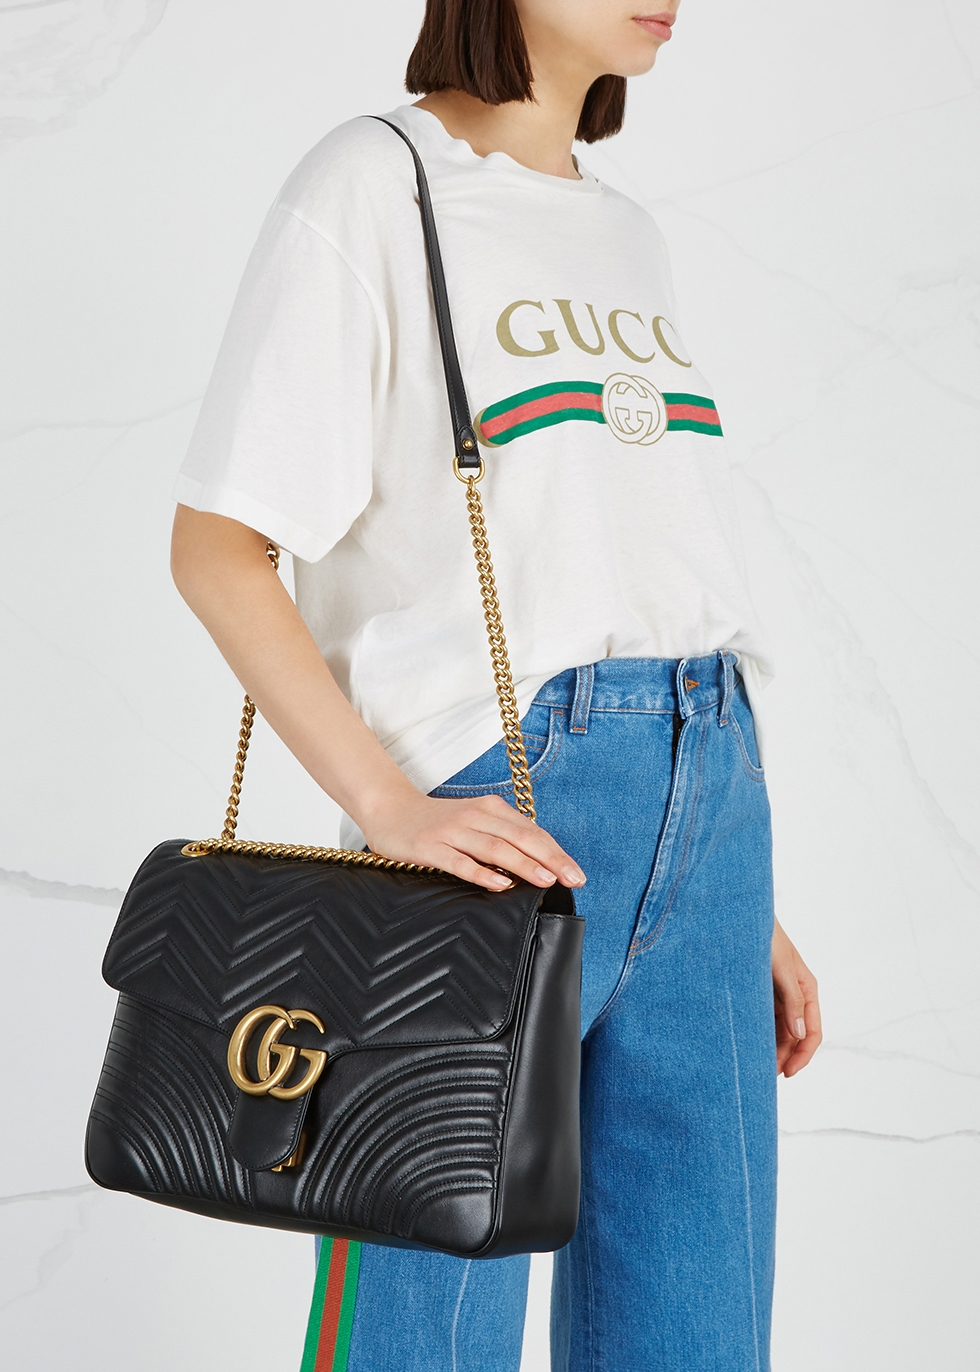 b5f6499a872 Gucci GG Marmont large leather shoulder bag - Harvey Nichols